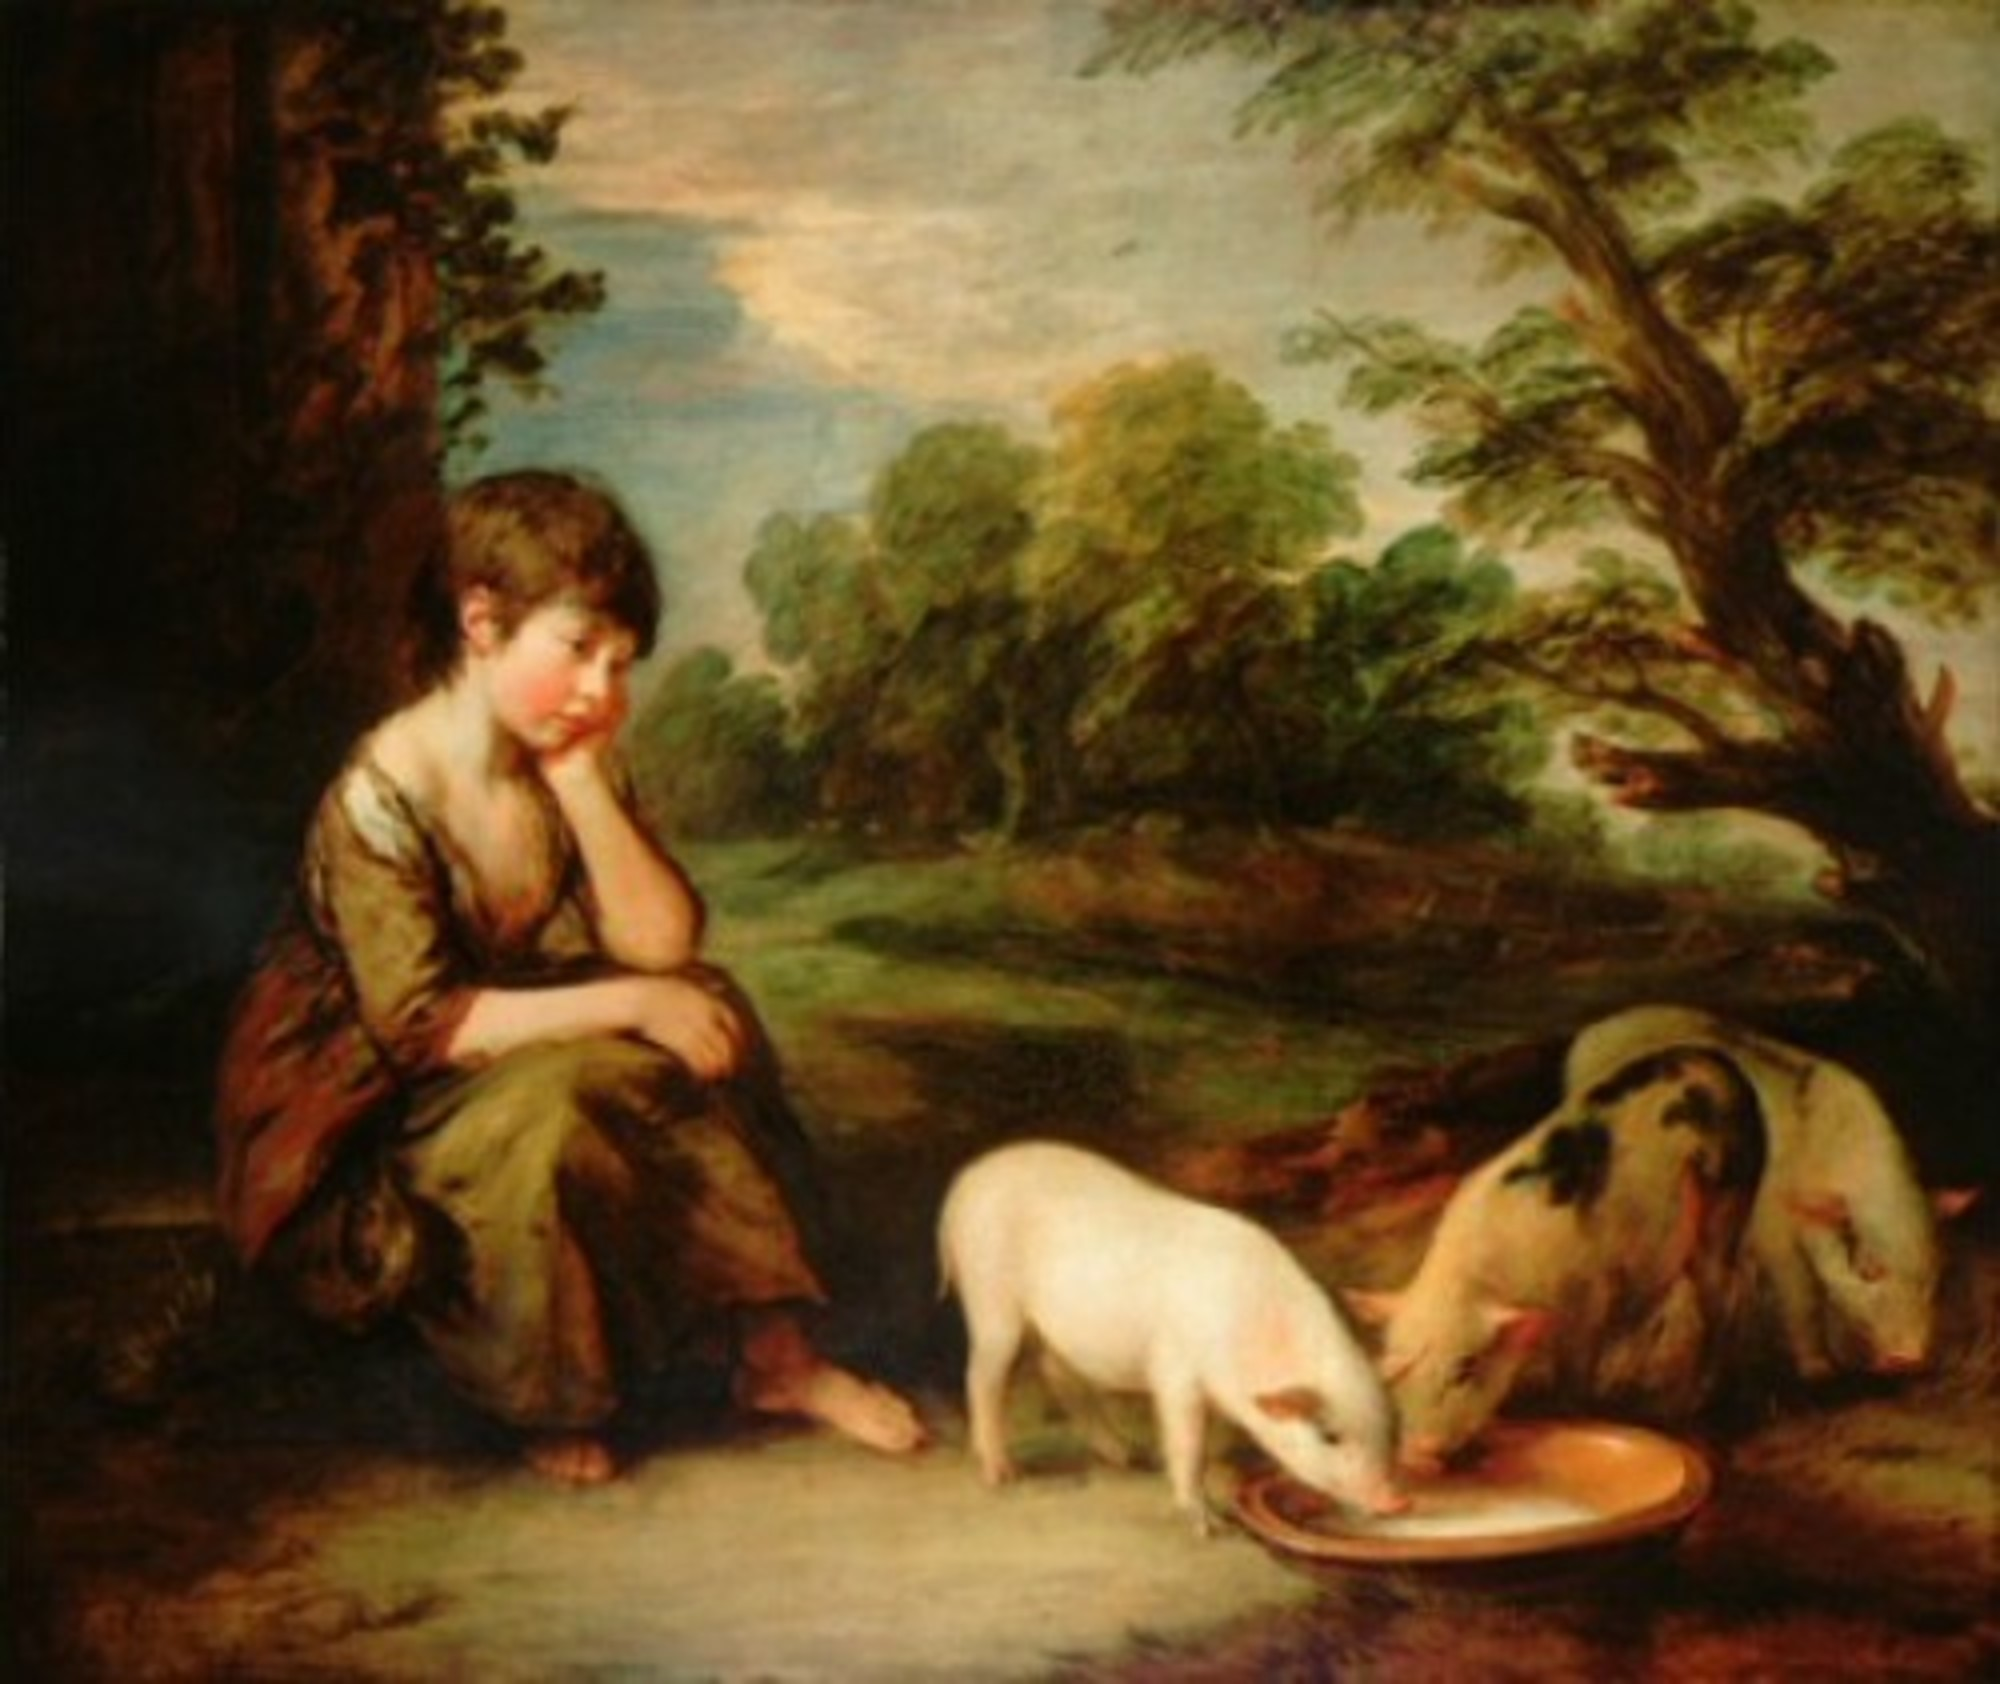 Girl_with_Pigs_by_Thomas_Gainsborough.jpg